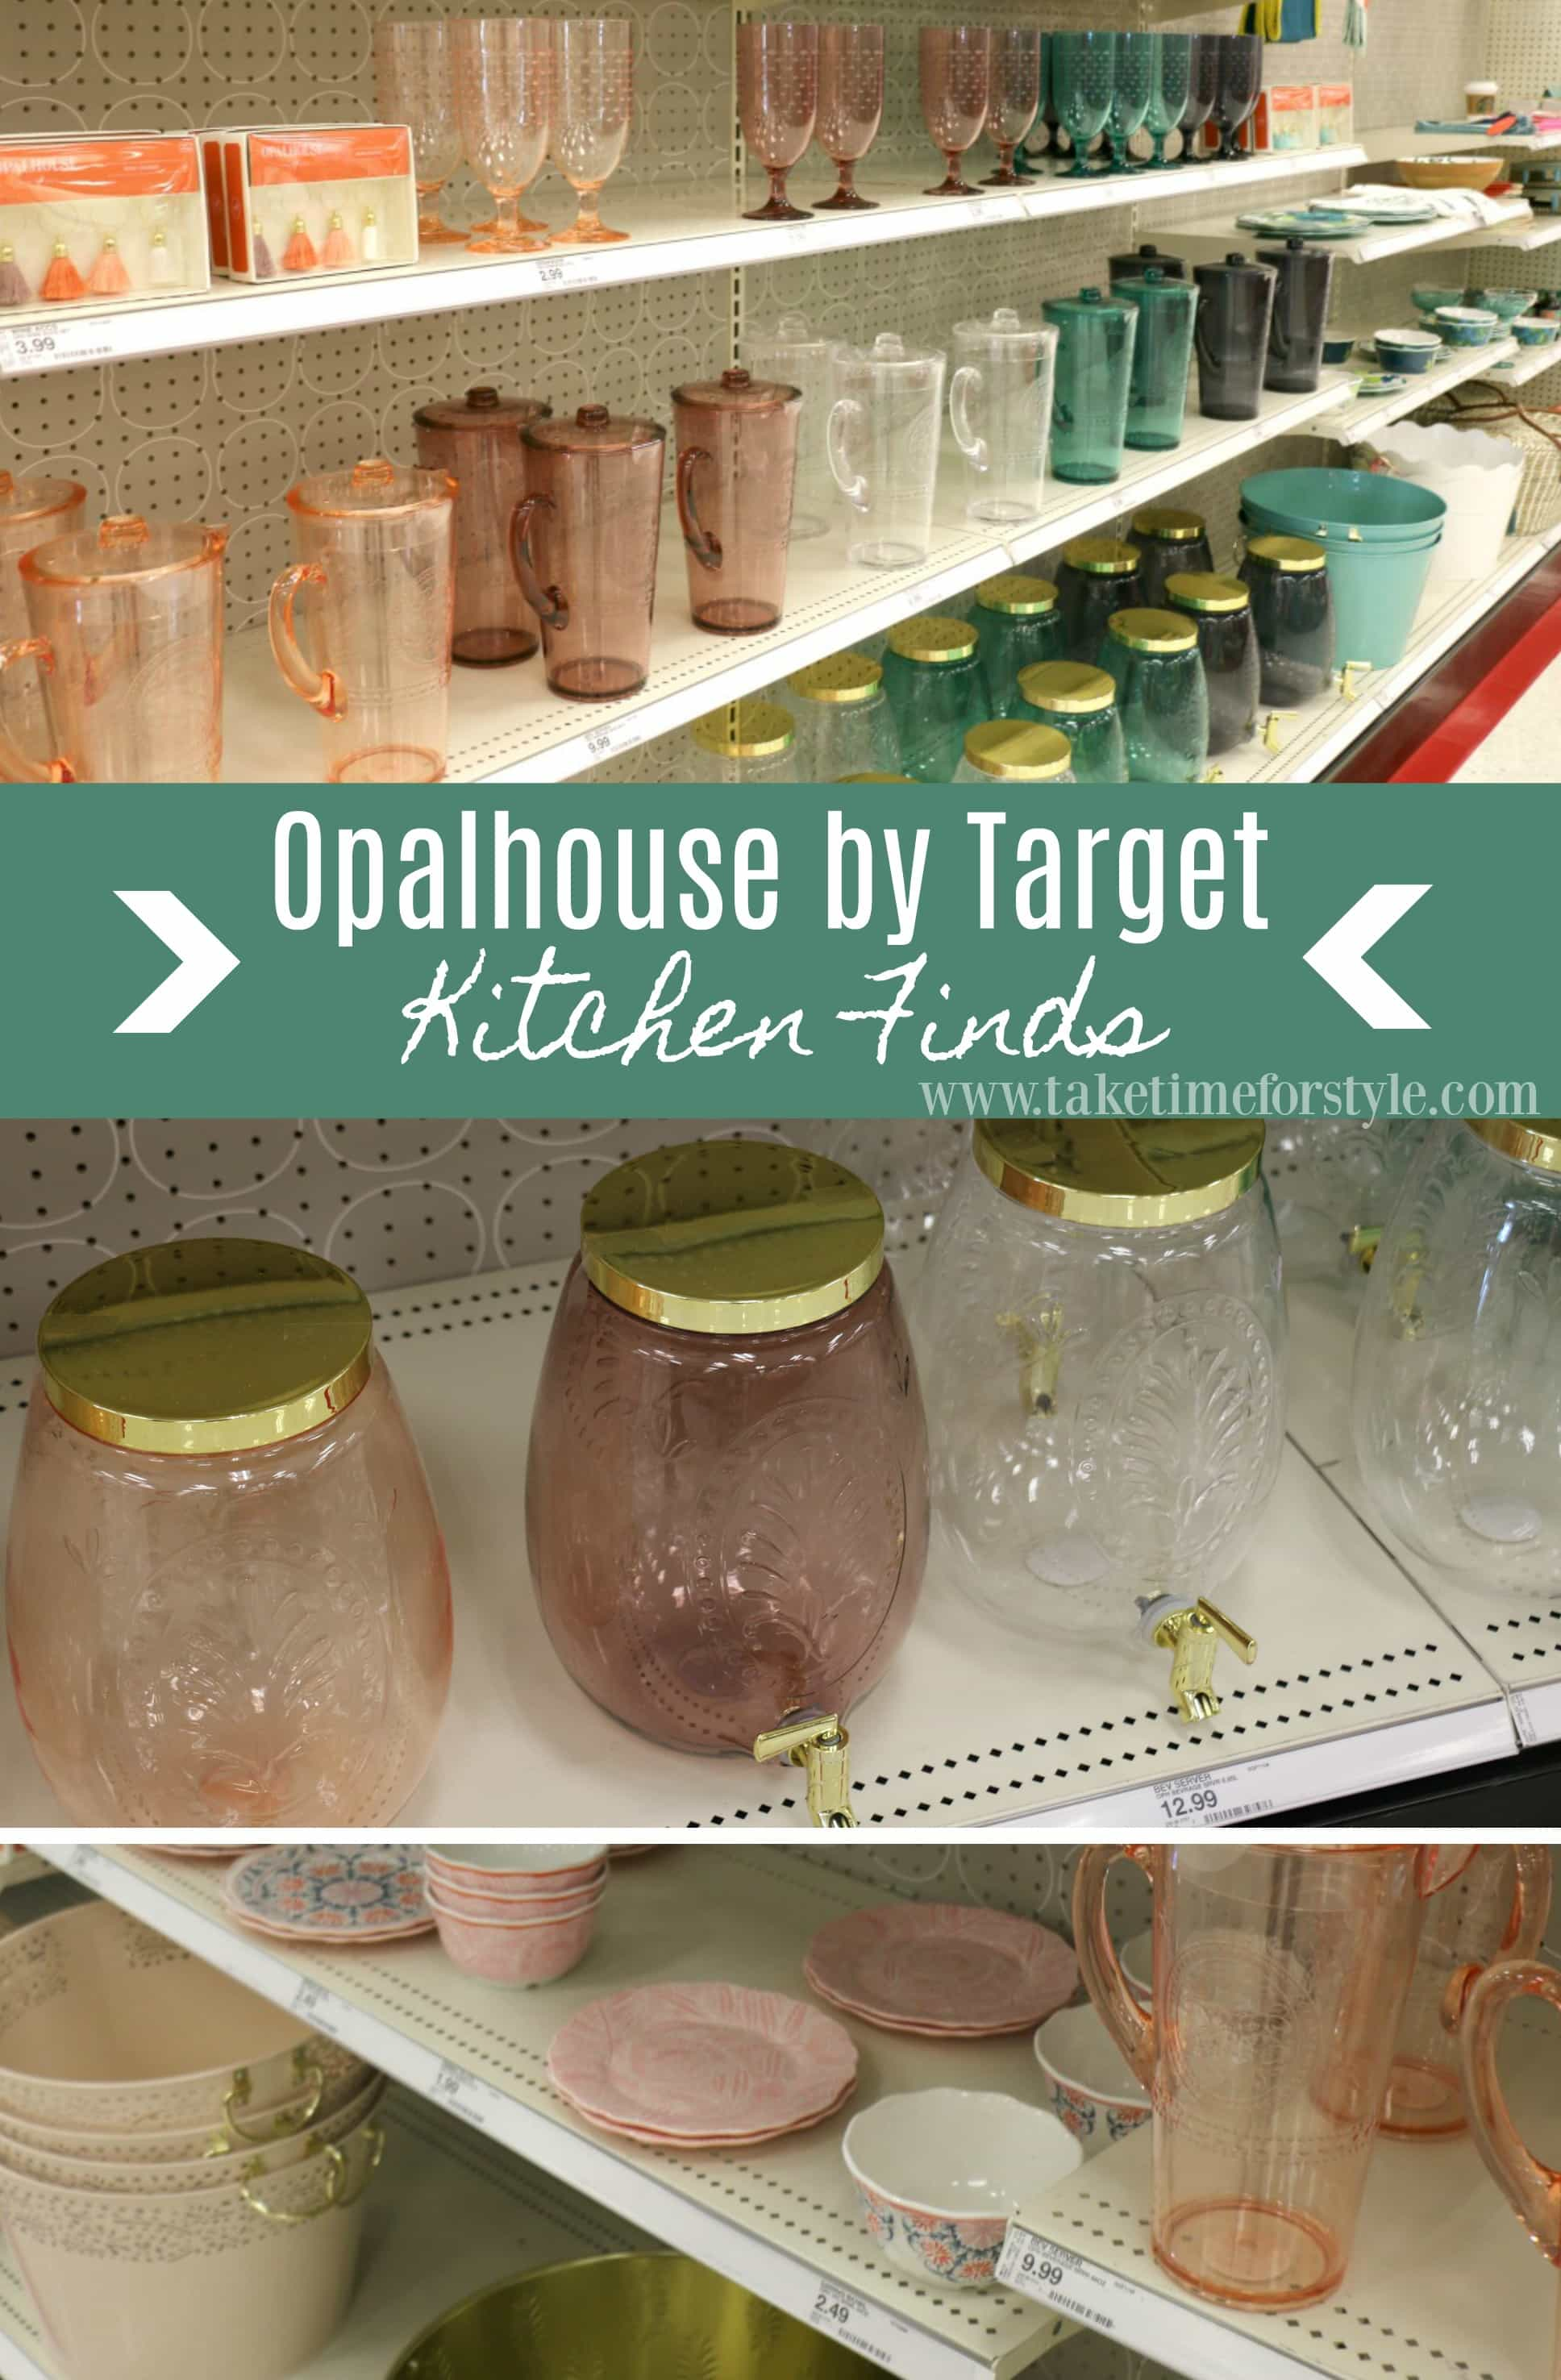 opalhouse by target finds